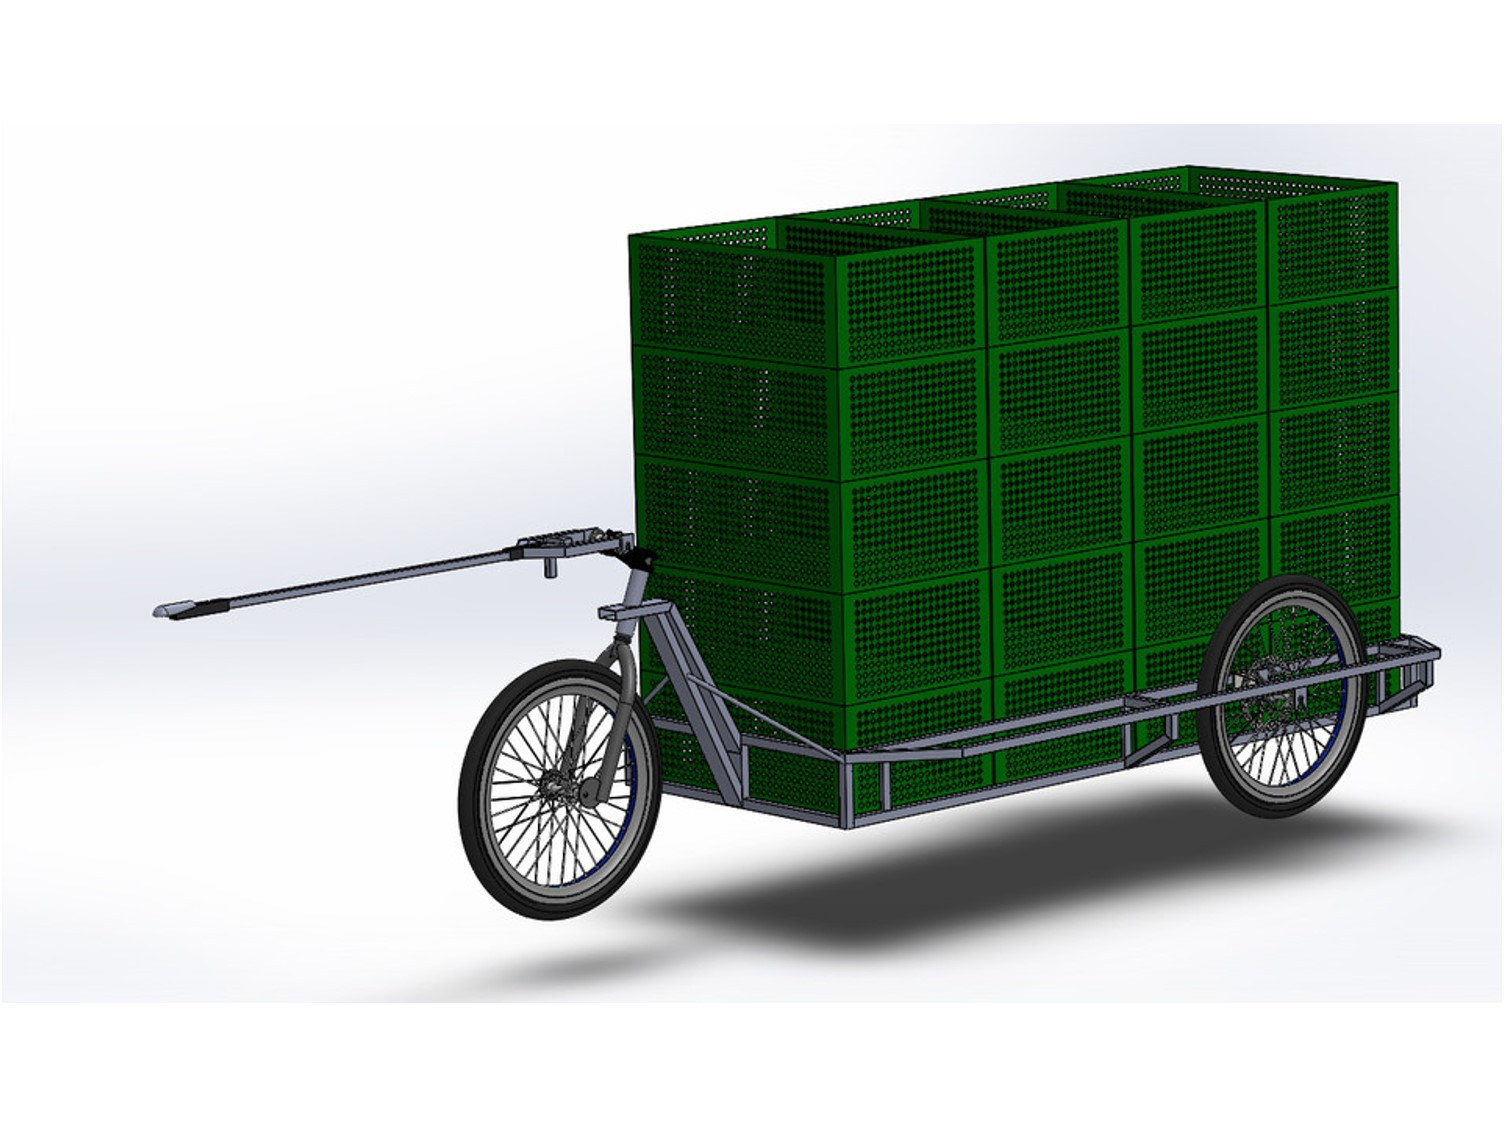 Carlacargo trailer bike can hold up to 24 standard cases. Insulate your crocodile crates with the cotton insert of COLD & CO to make your deliveries of fresh products.